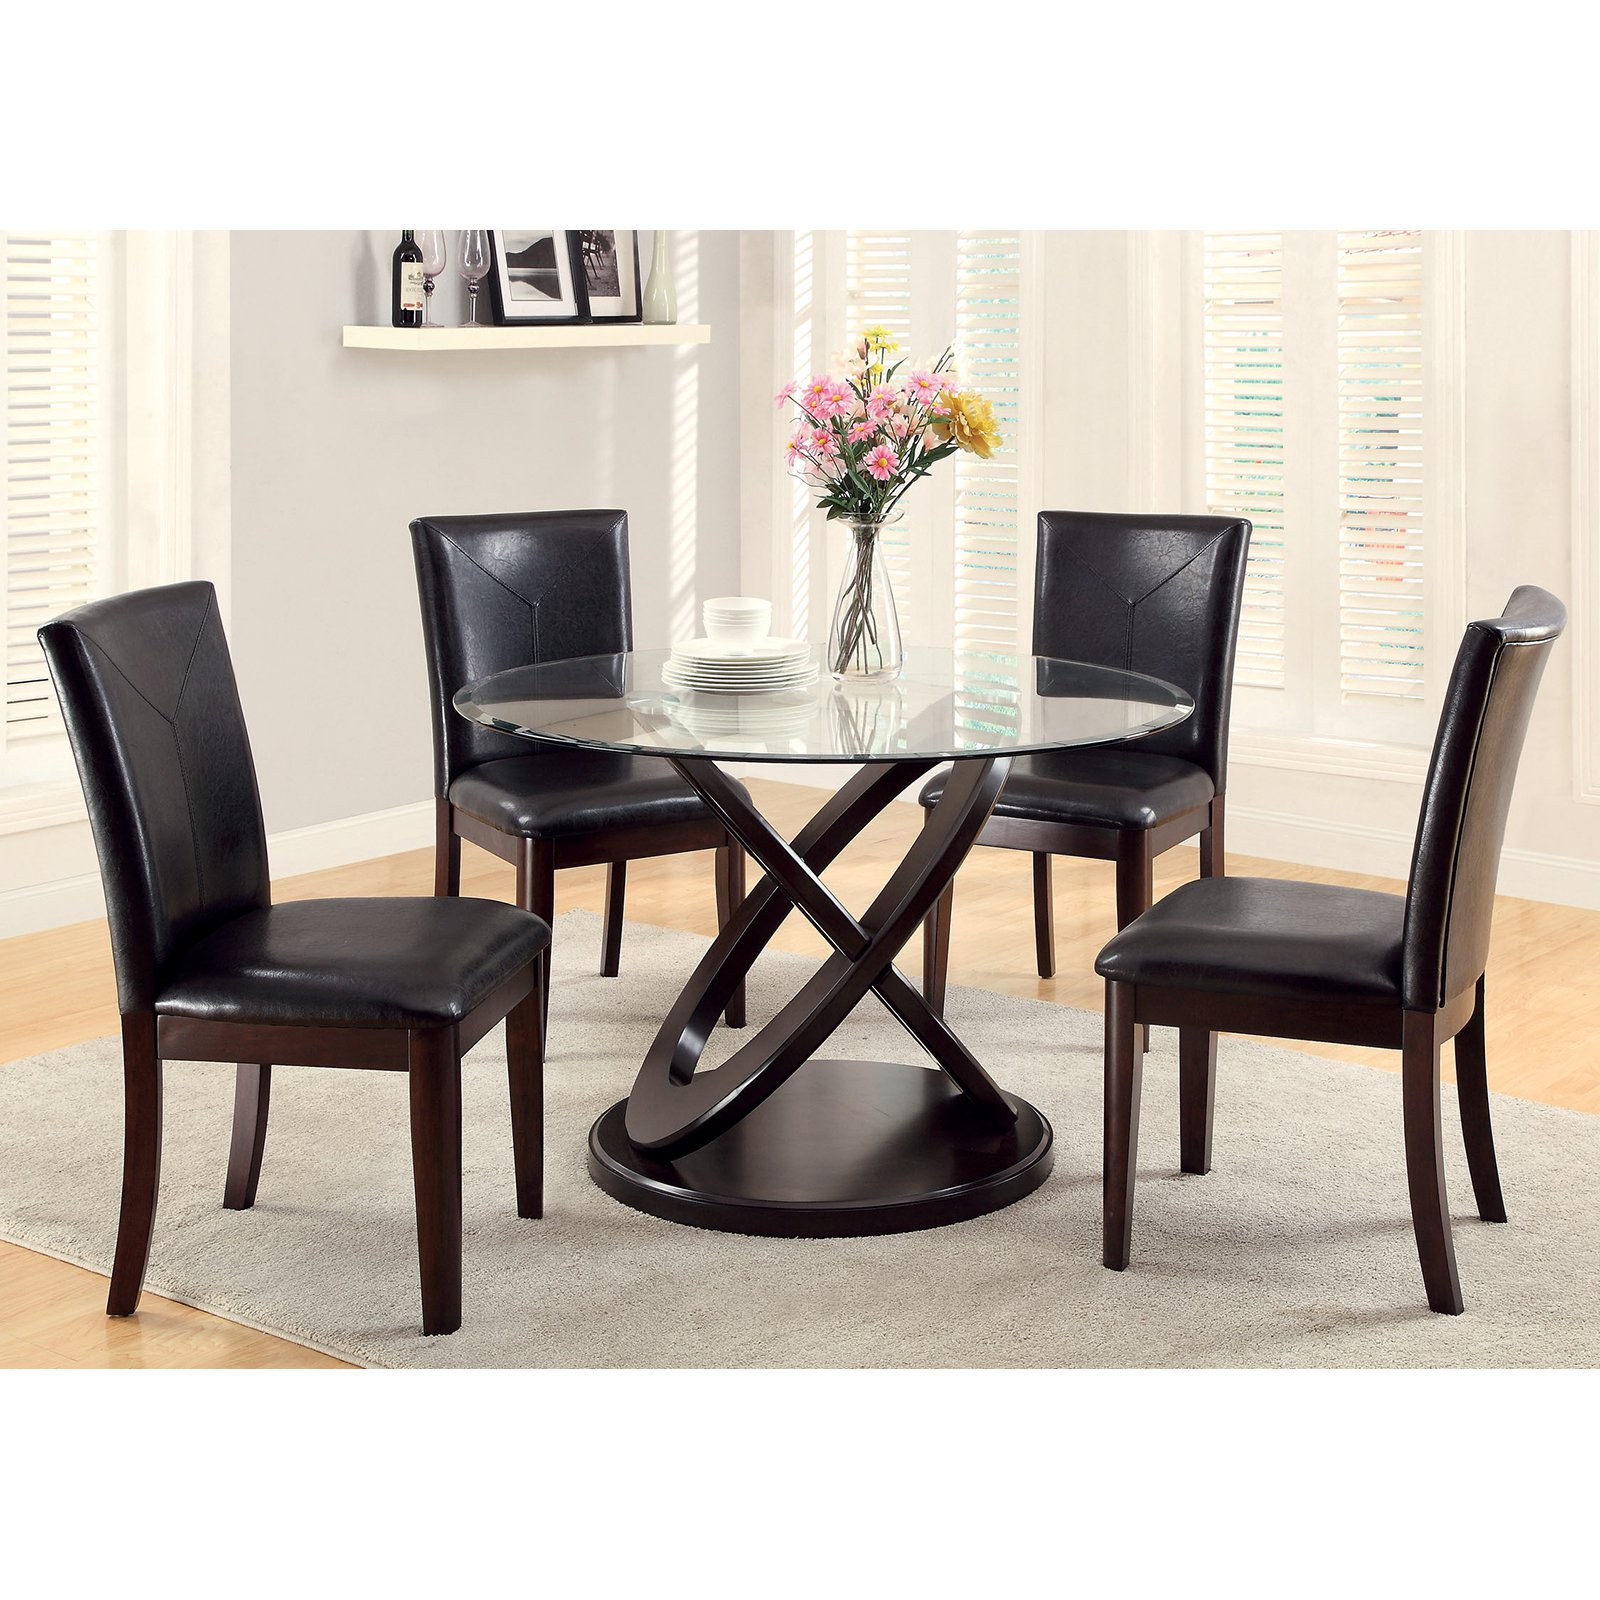 modern farmhouse table nantucket room sets design ideas breeze for expandable chairs round formal elegant best tables style contemporary discontinued center wood spaces small